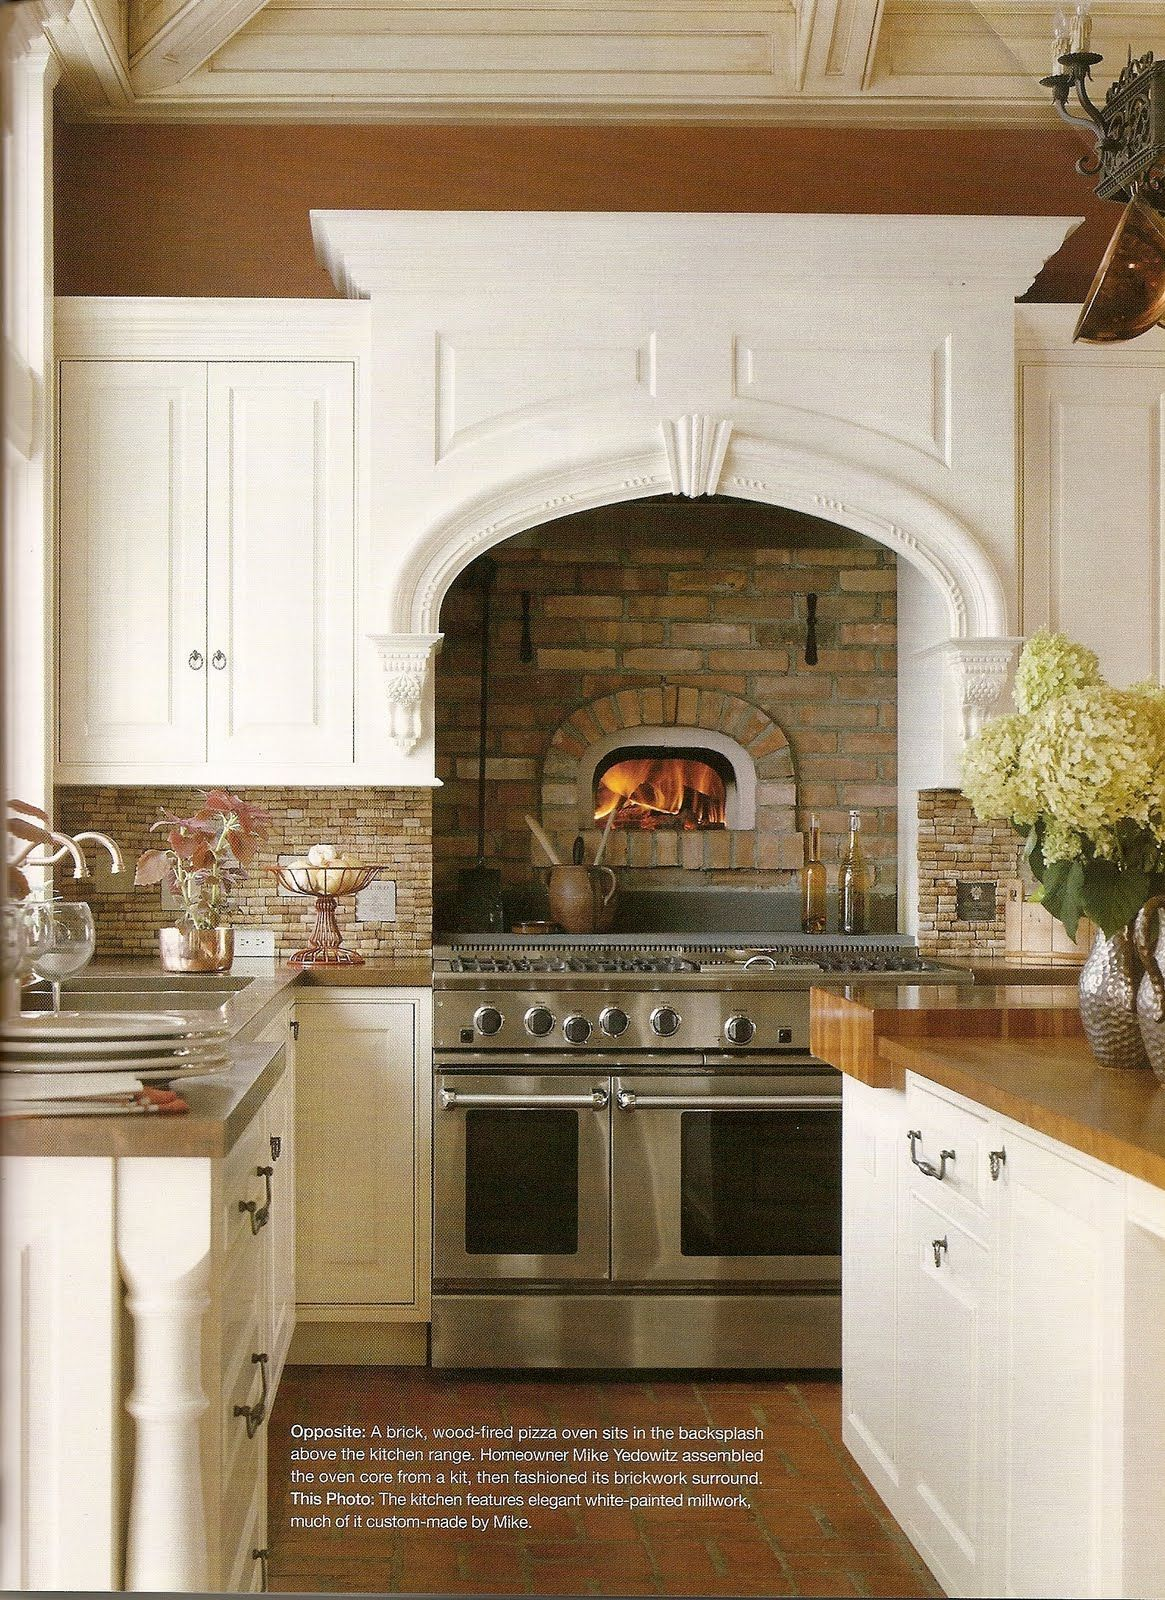 Kitchen Design Love The Built In Brick Wood Fire Oven Pizza Ovens Pizza Ovens Outdoor Fire Pits Outdoor Pi In 2020 Home Kitchens Kitchen Inspirations Kitchen Design